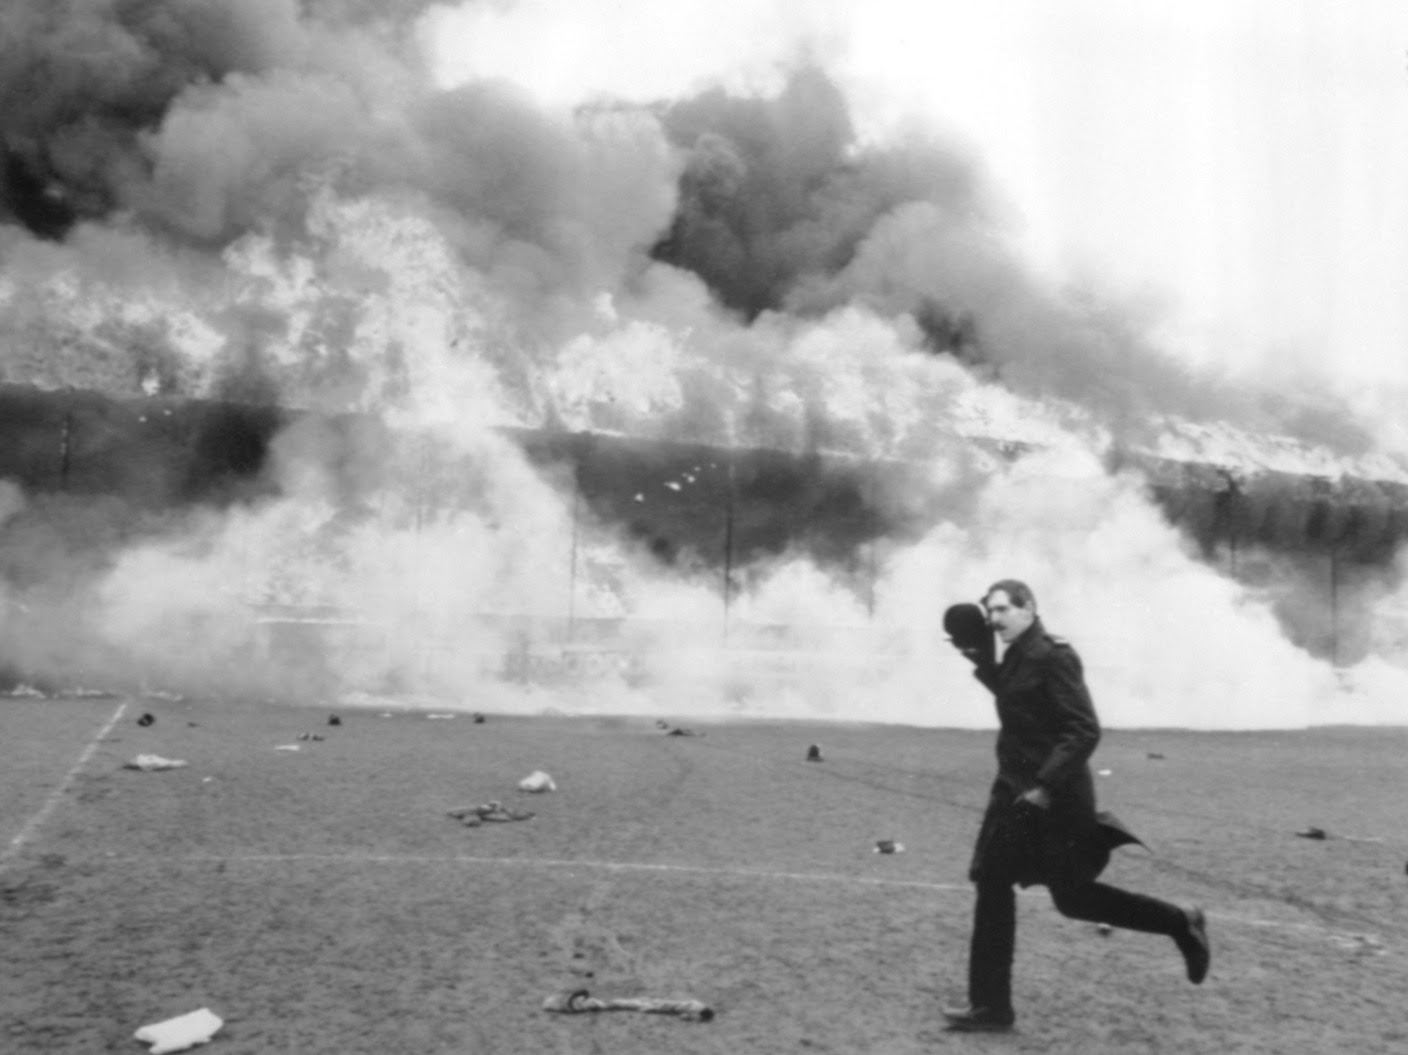 Bradford City fire disaster remembered 32 years on ...